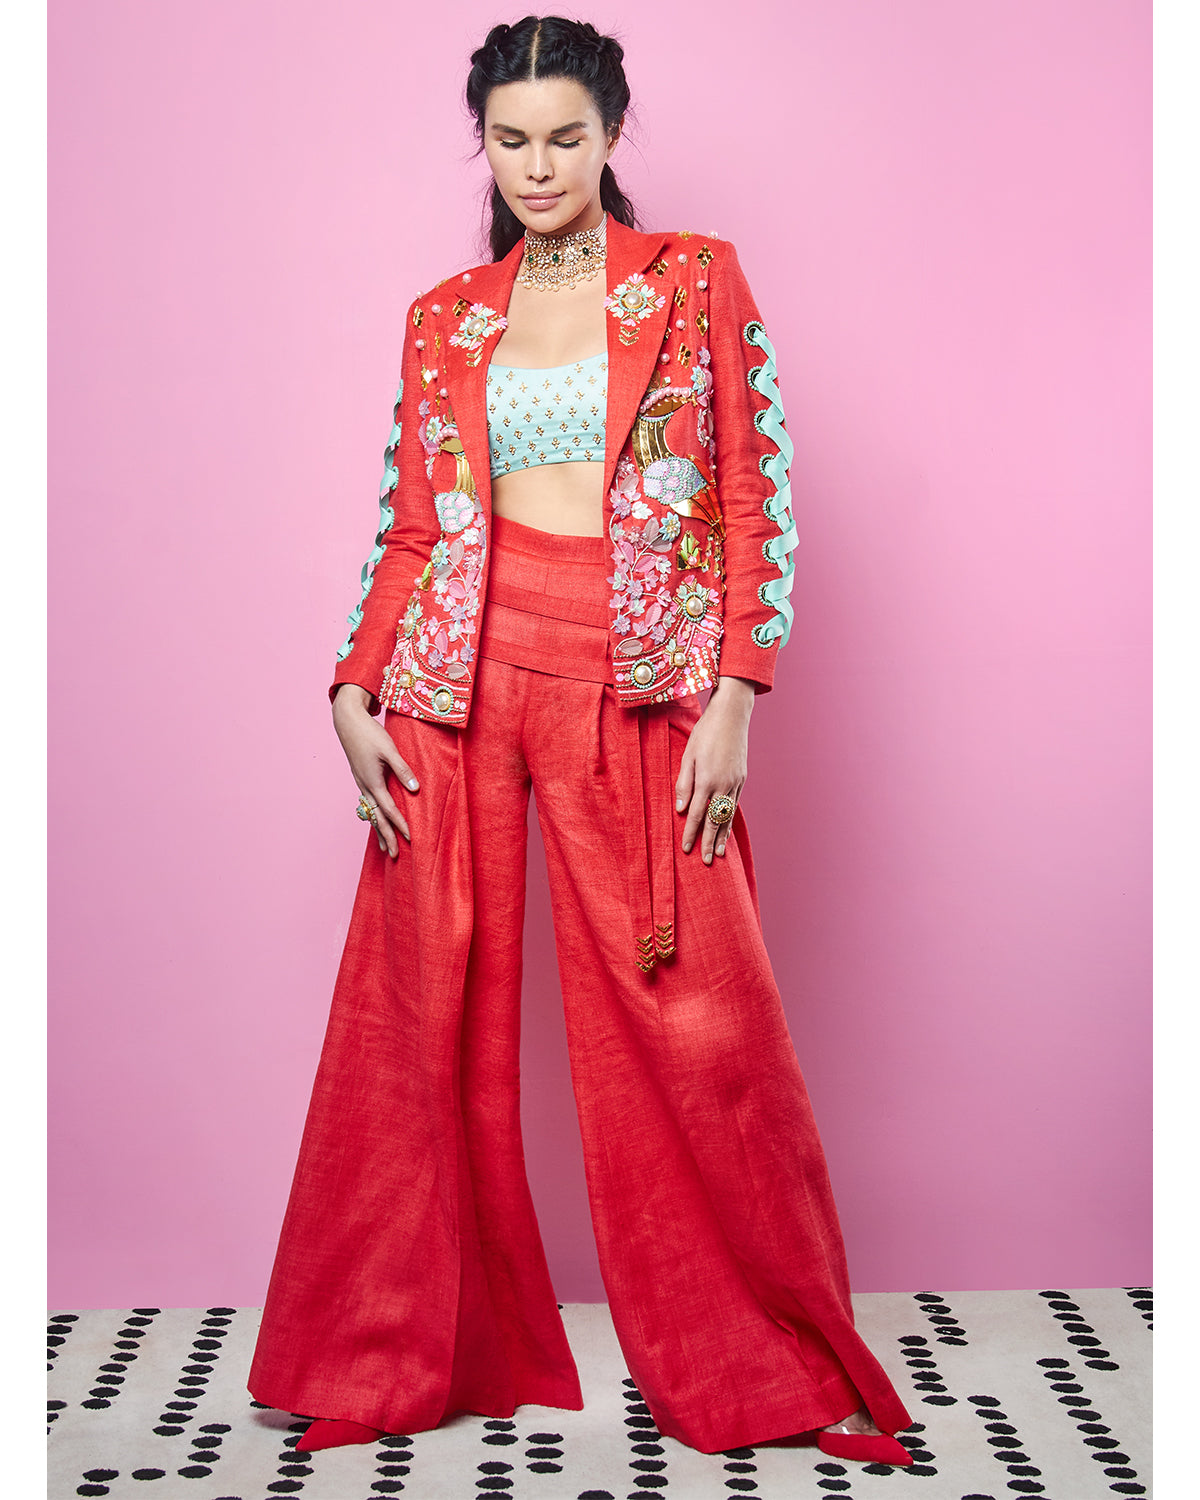 Red and Mint Pant Suit | Papa Don't Preach